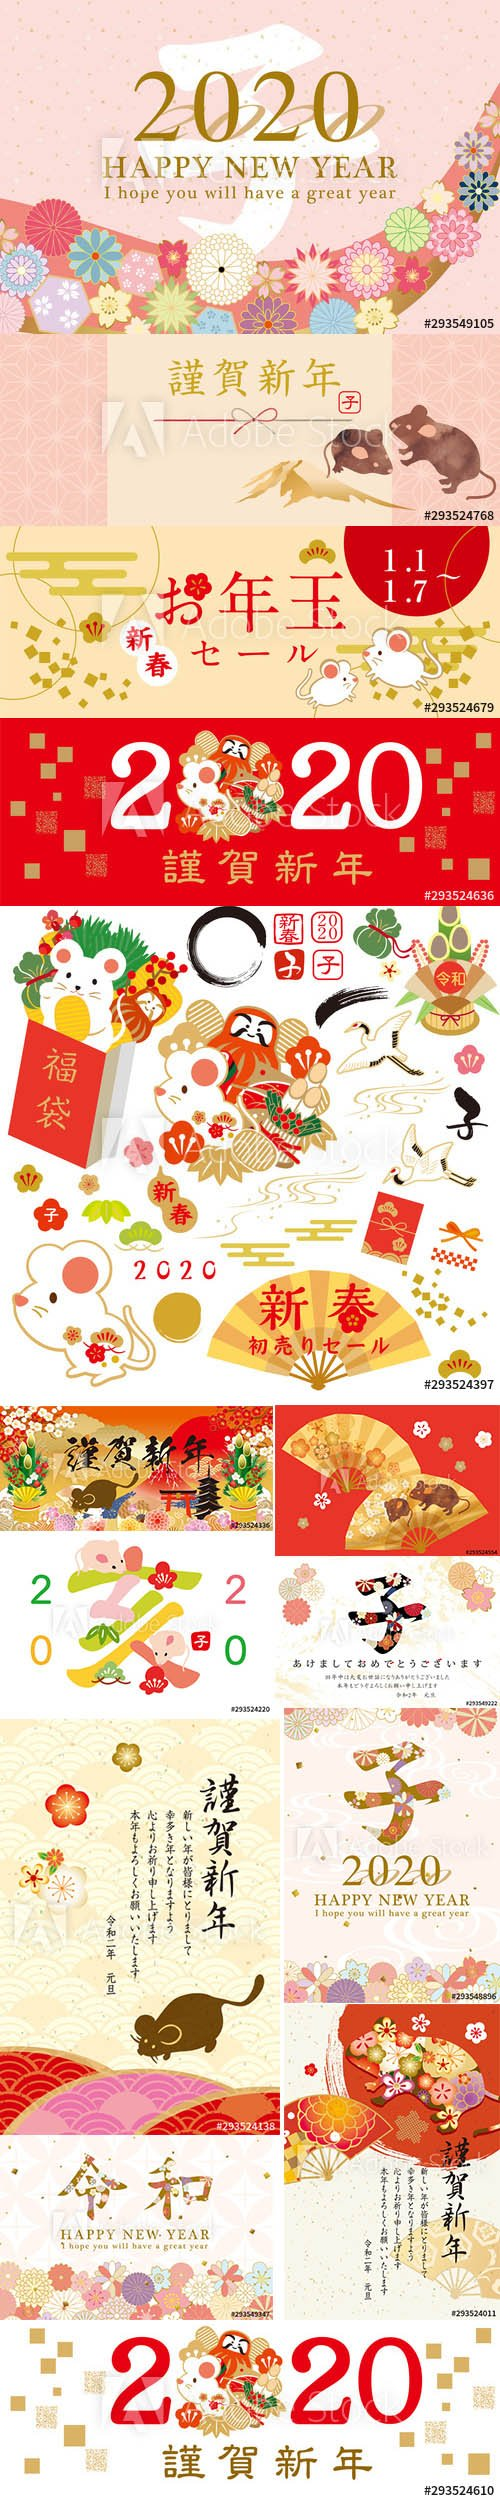 Chinese New Year 2020 Web Banner and Illustration vol2